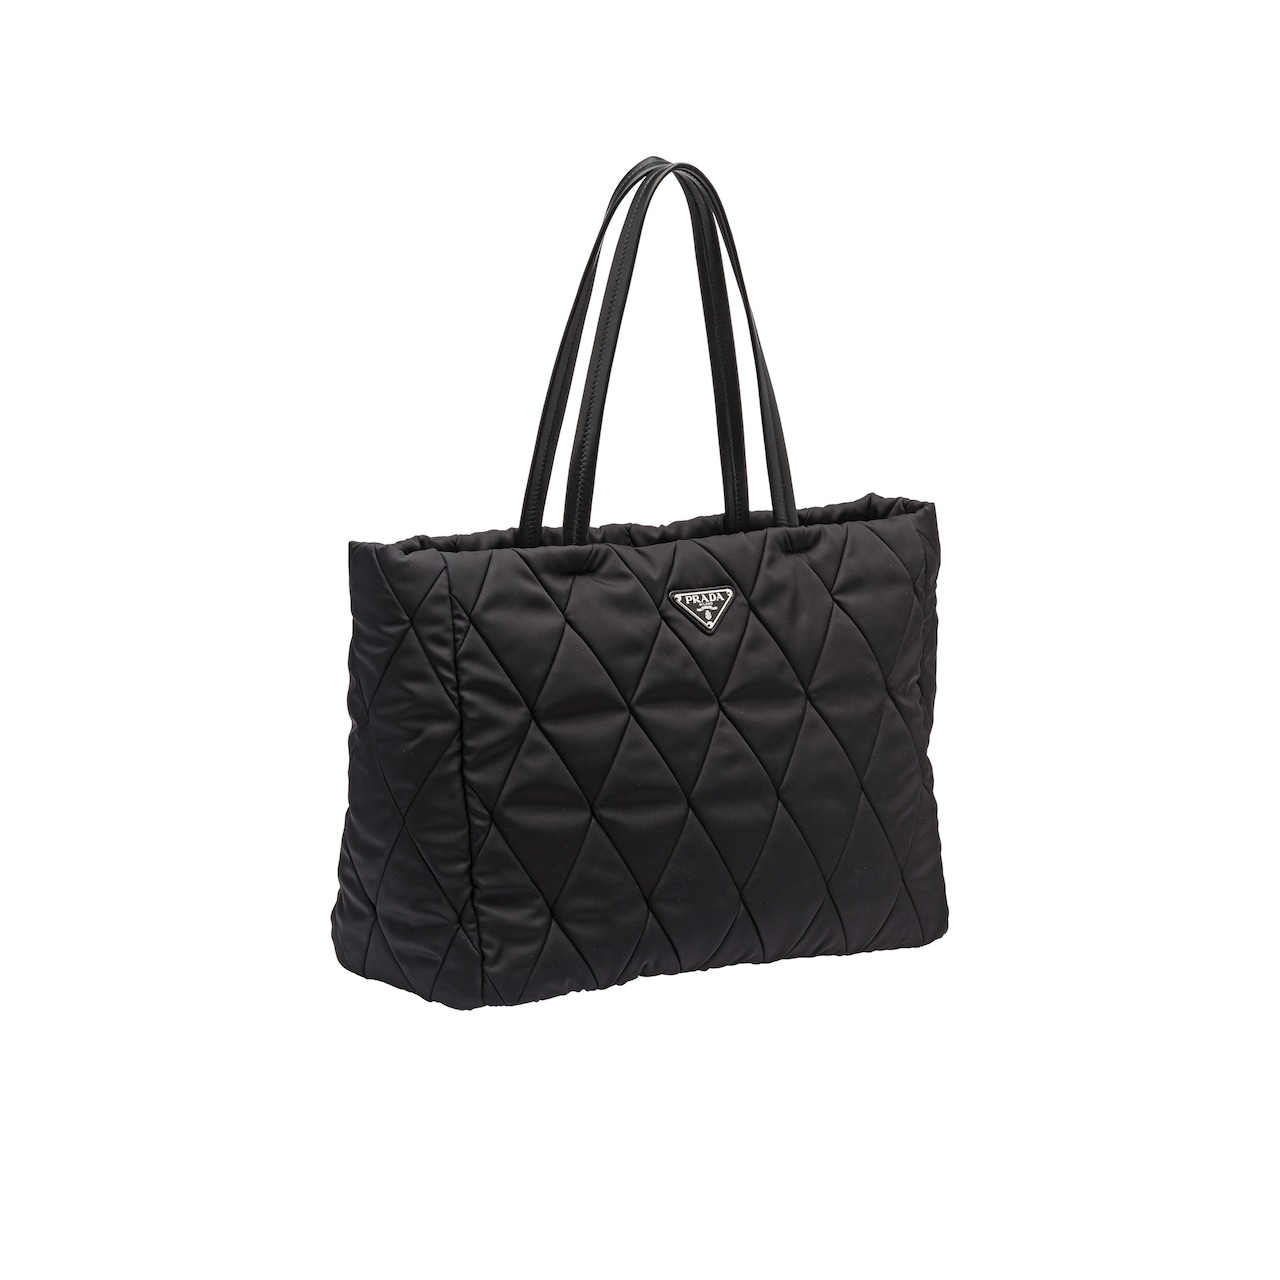 Quilting decorates this fabric tote with a sleek, clean design. The two  leather handles are long enough to wear the bag over the shoulder. 0b1abe7935